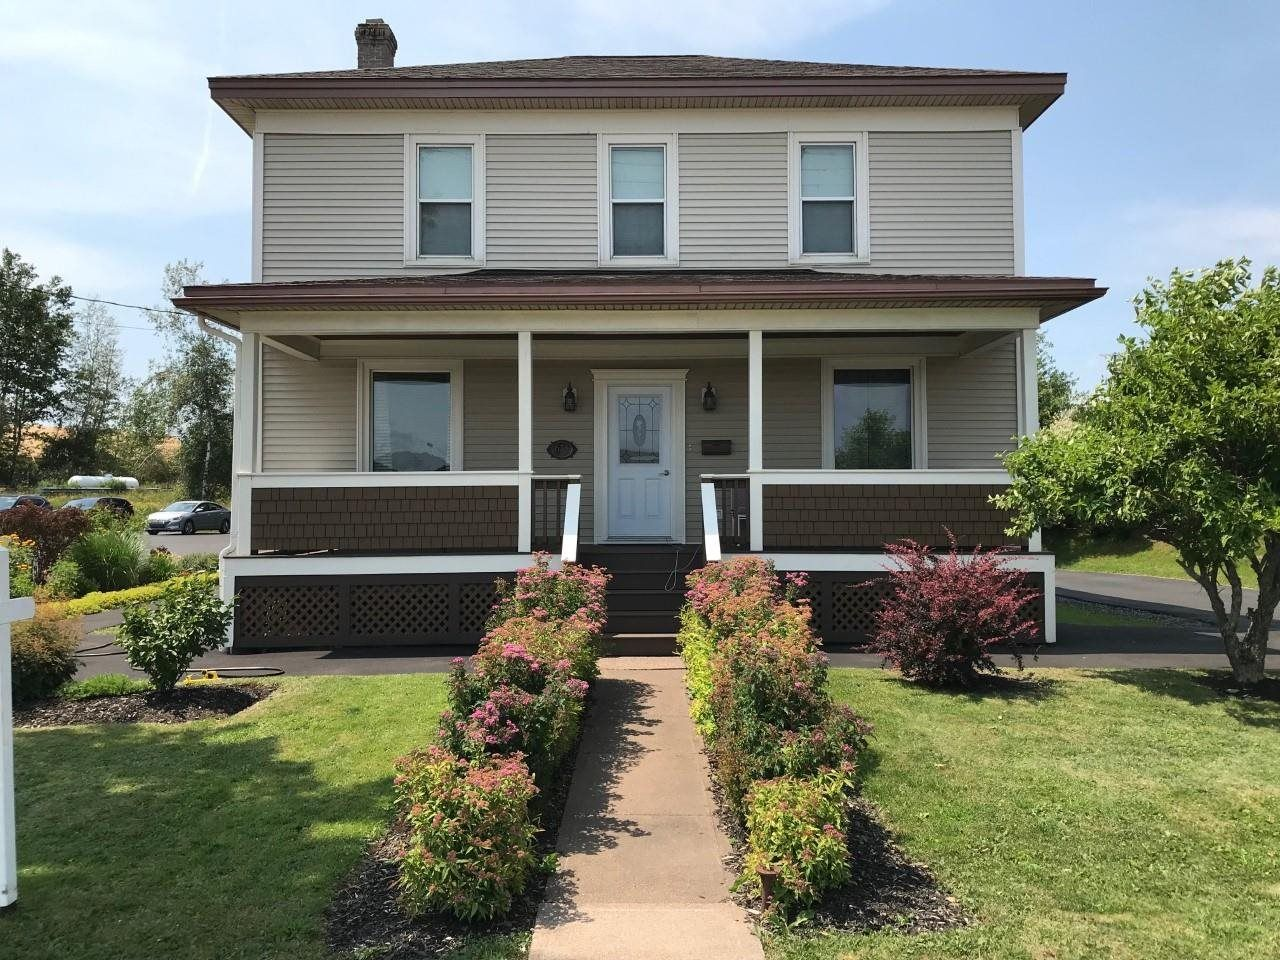 Main Photo: 625 East River Road in New Glasgow: 106-New Glasgow, Stellarton Residential for sale (Northern Region)  : MLS®# 202118231